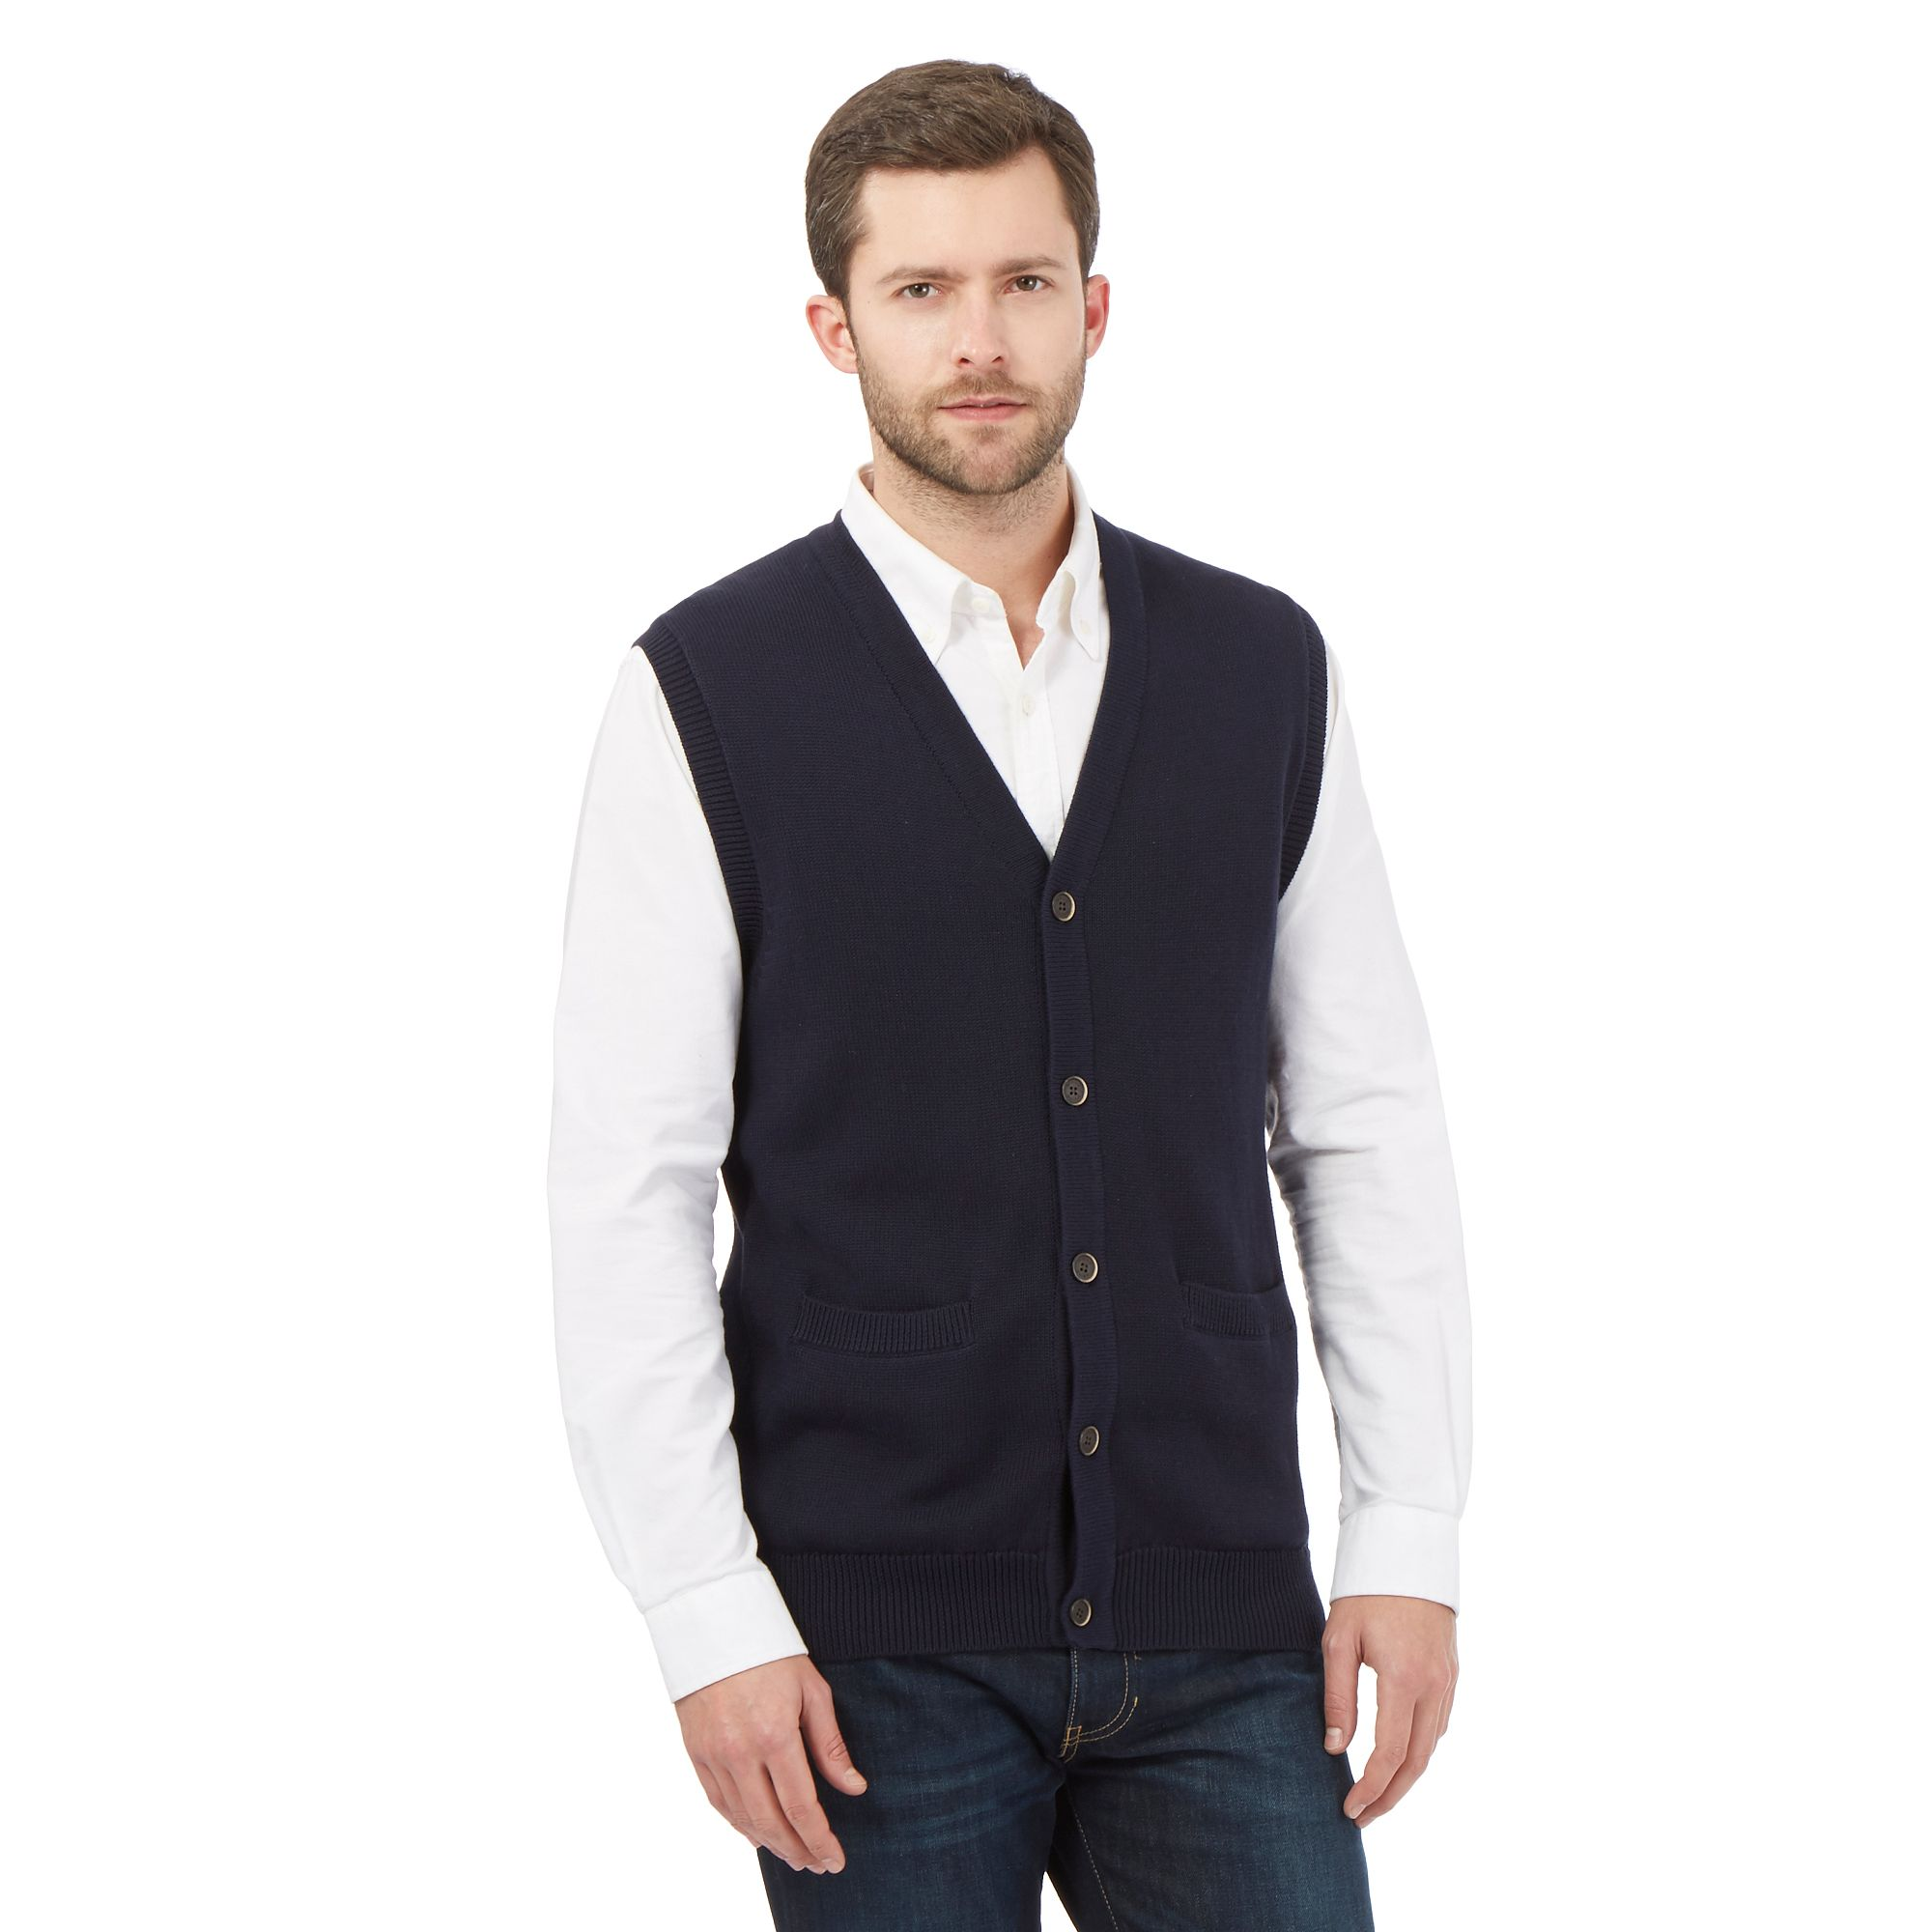 Find great deals on eBay for Mens Sleeveless Cardigan in Sweaters and Clothing for Men. Shop with confidence.